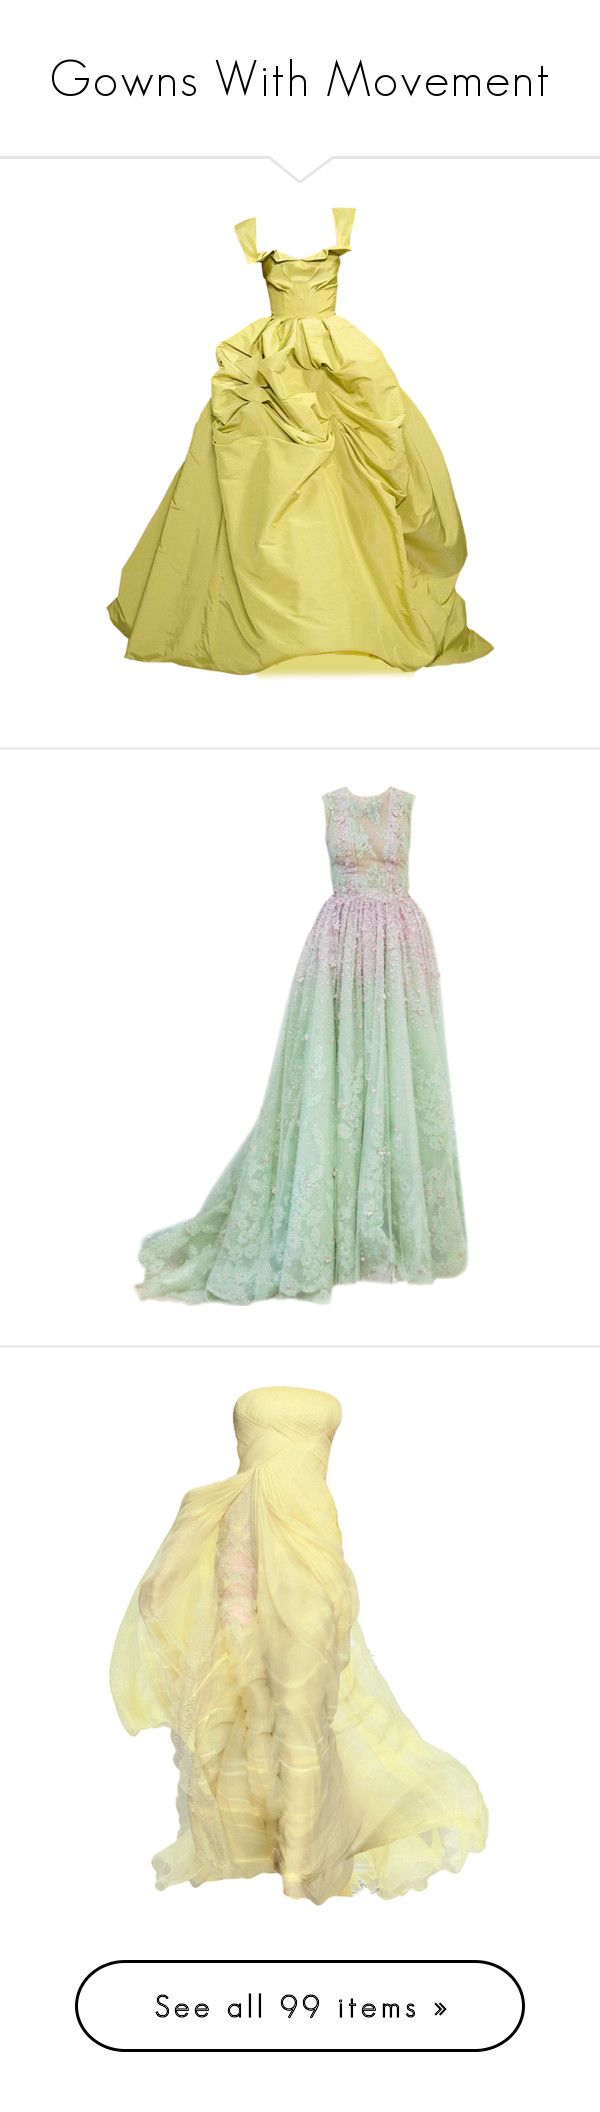 """""""Gowns With Movement"""" by cynthia335 ❤ liked on Polyvore featuring dresses, gowns, long dress, oscar de la renta, oscar de la renta dresses, beige dress, beige long dress, beige gown, oscar de la renta evening gowns and vestidos"""